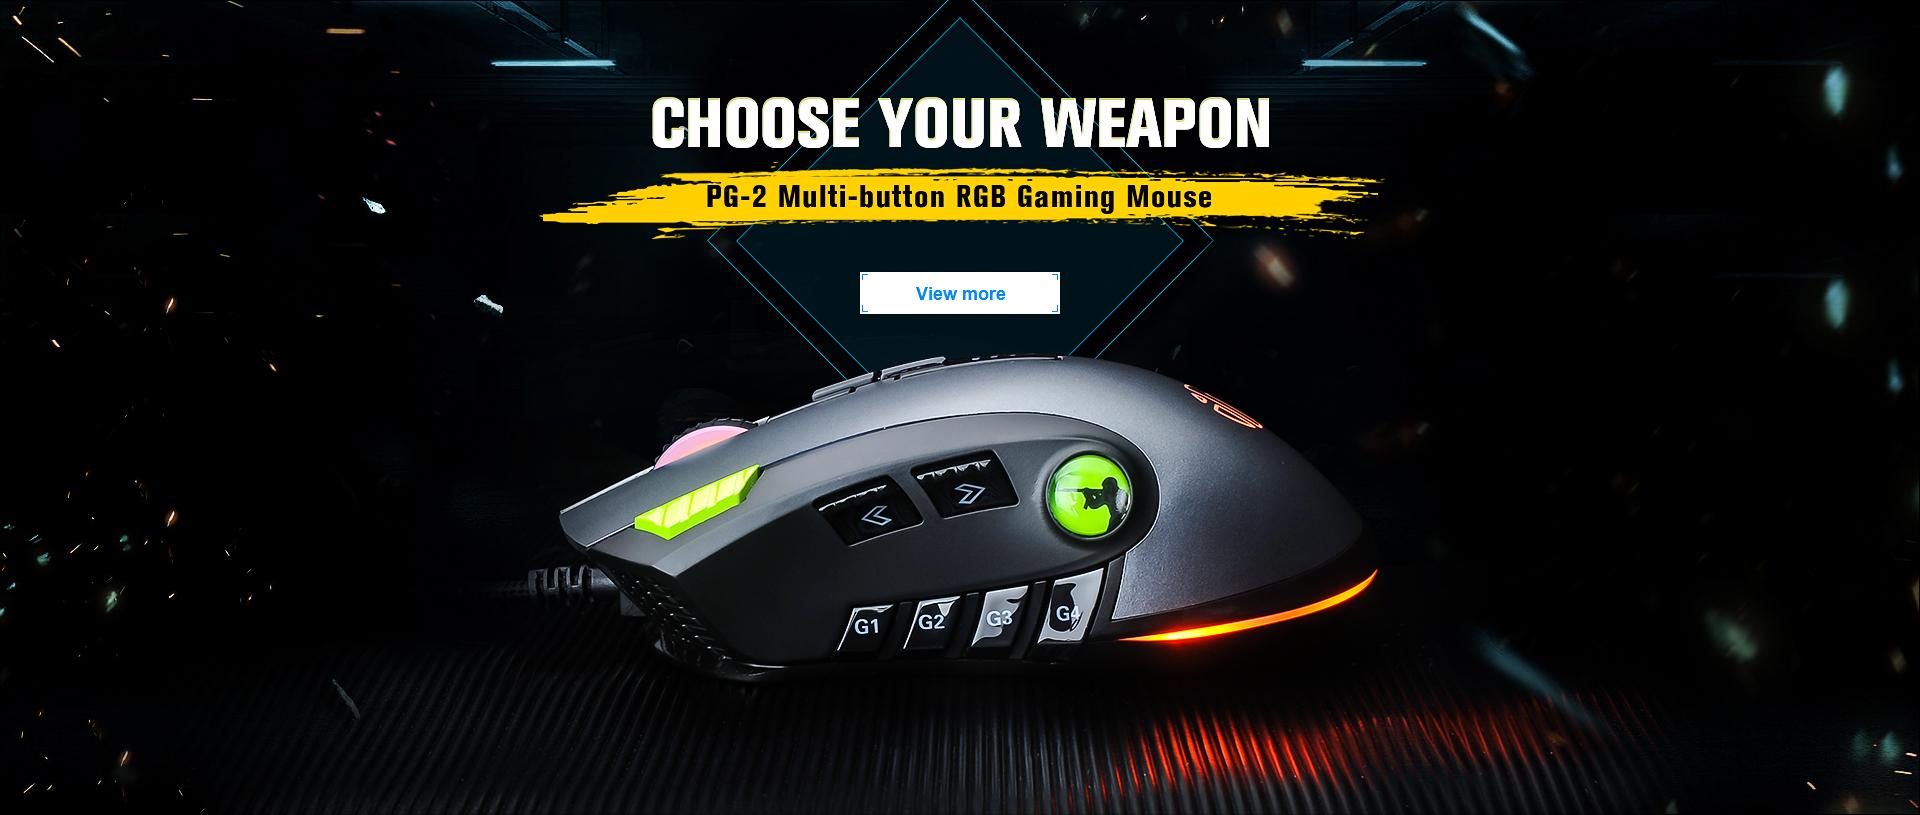 inphic PG-2 gaming mouse